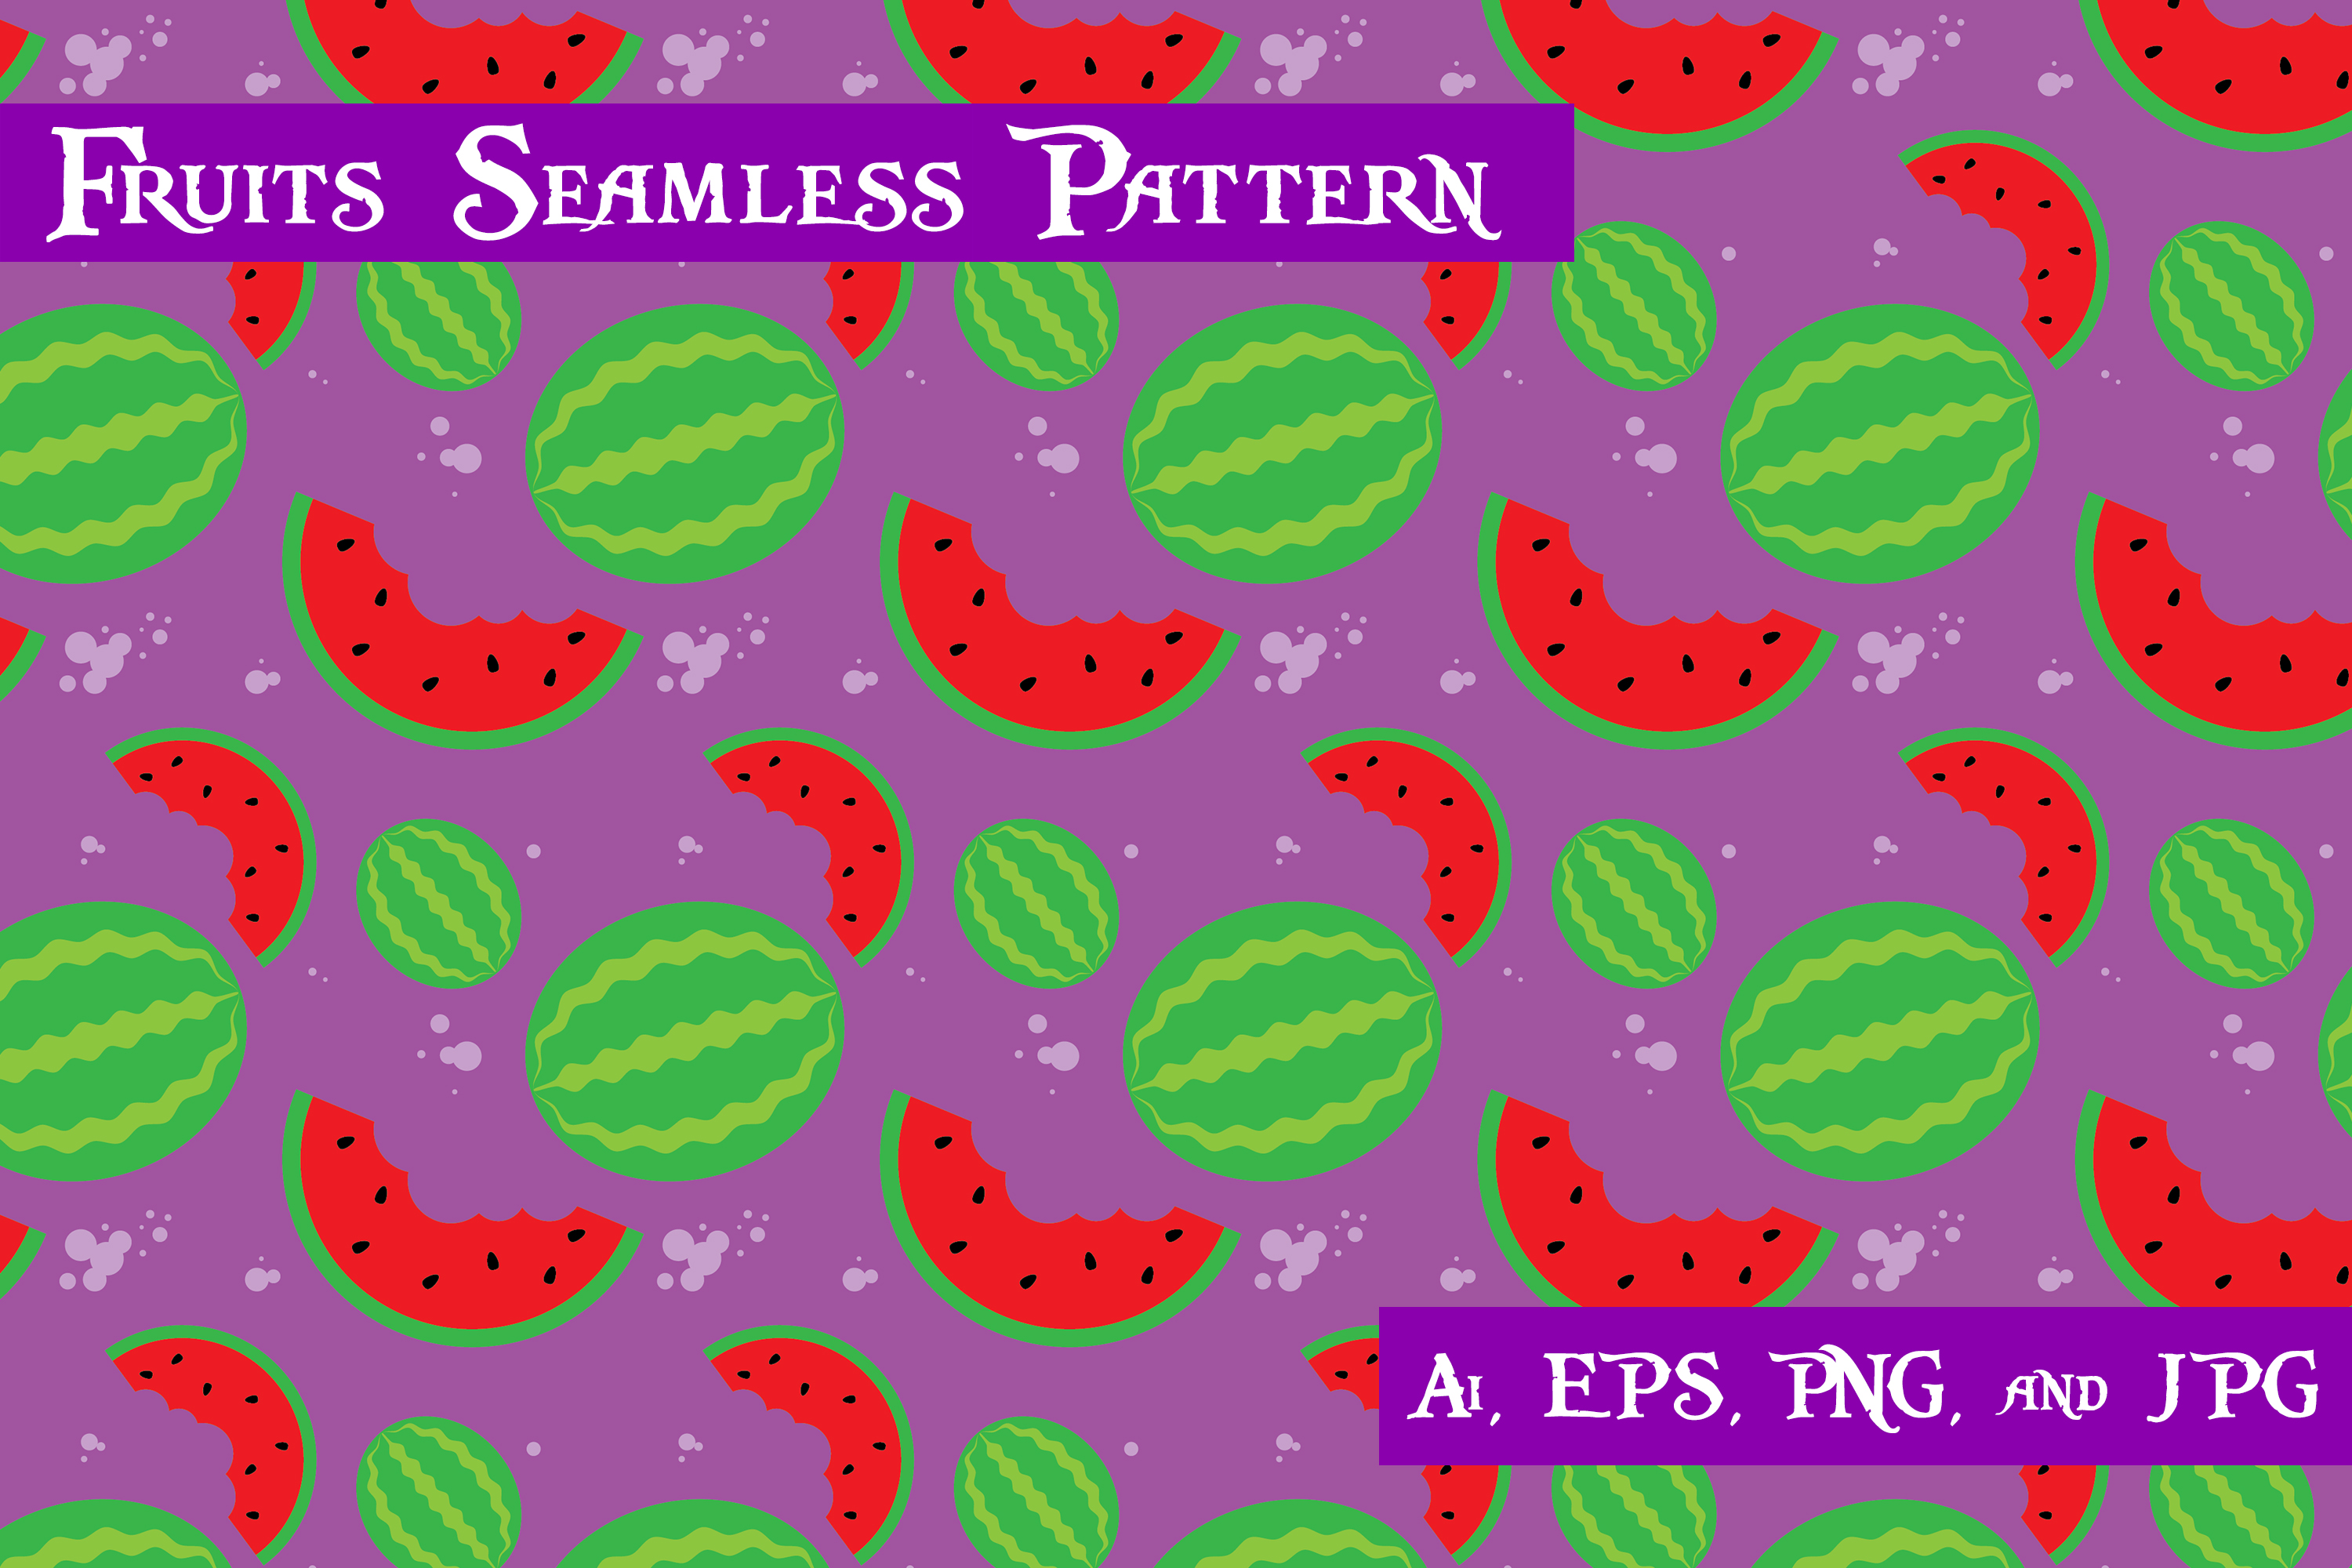 Download Free Watermelon Fruits Seamless Pattern Graphic By Purplespoonpirates for Cricut Explore, Silhouette and other cutting machines.